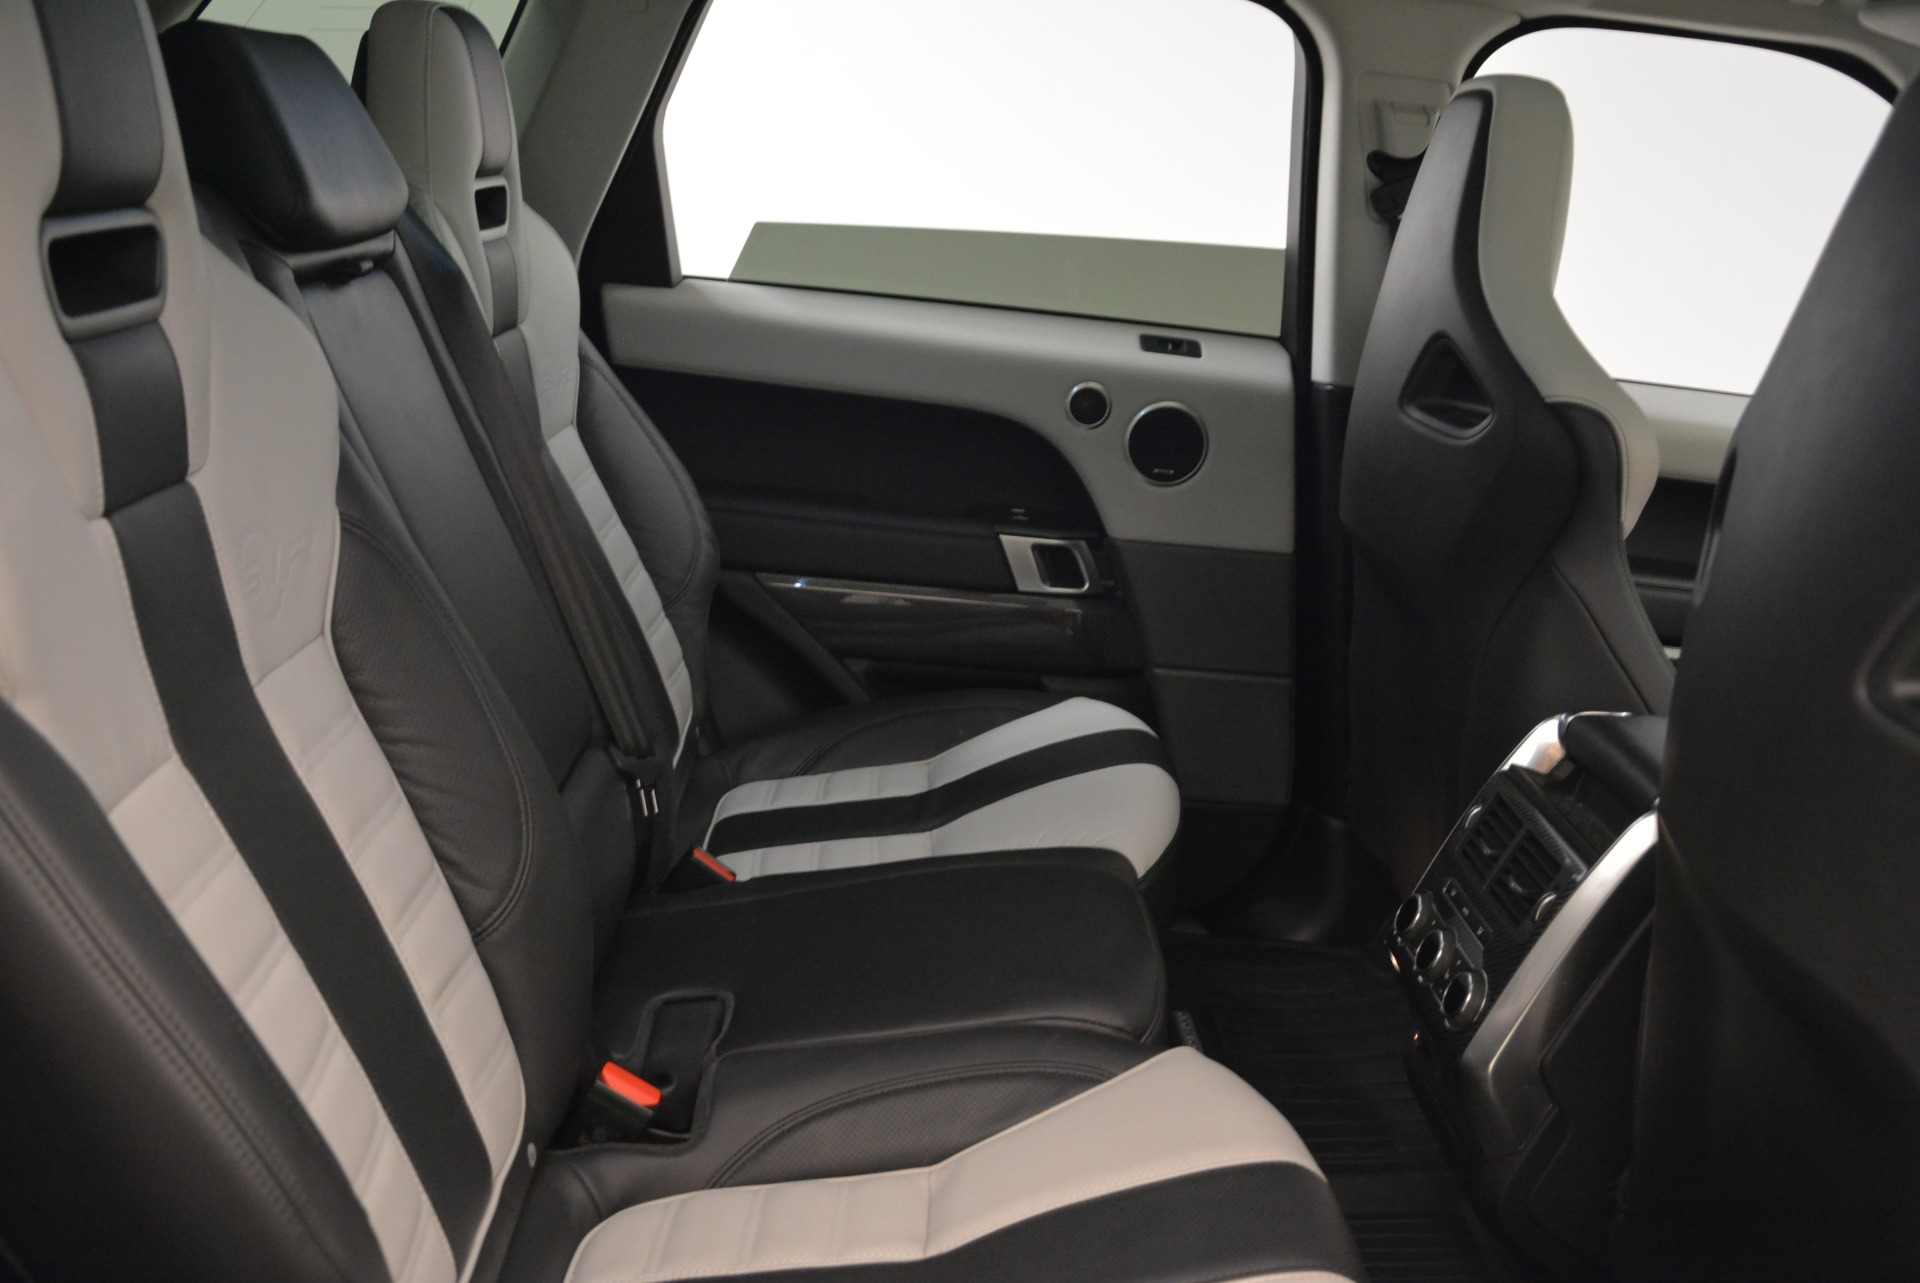 Used 2015 Land Rover Range Rover Sport SVR For Sale In Westport, CT 2046_p24